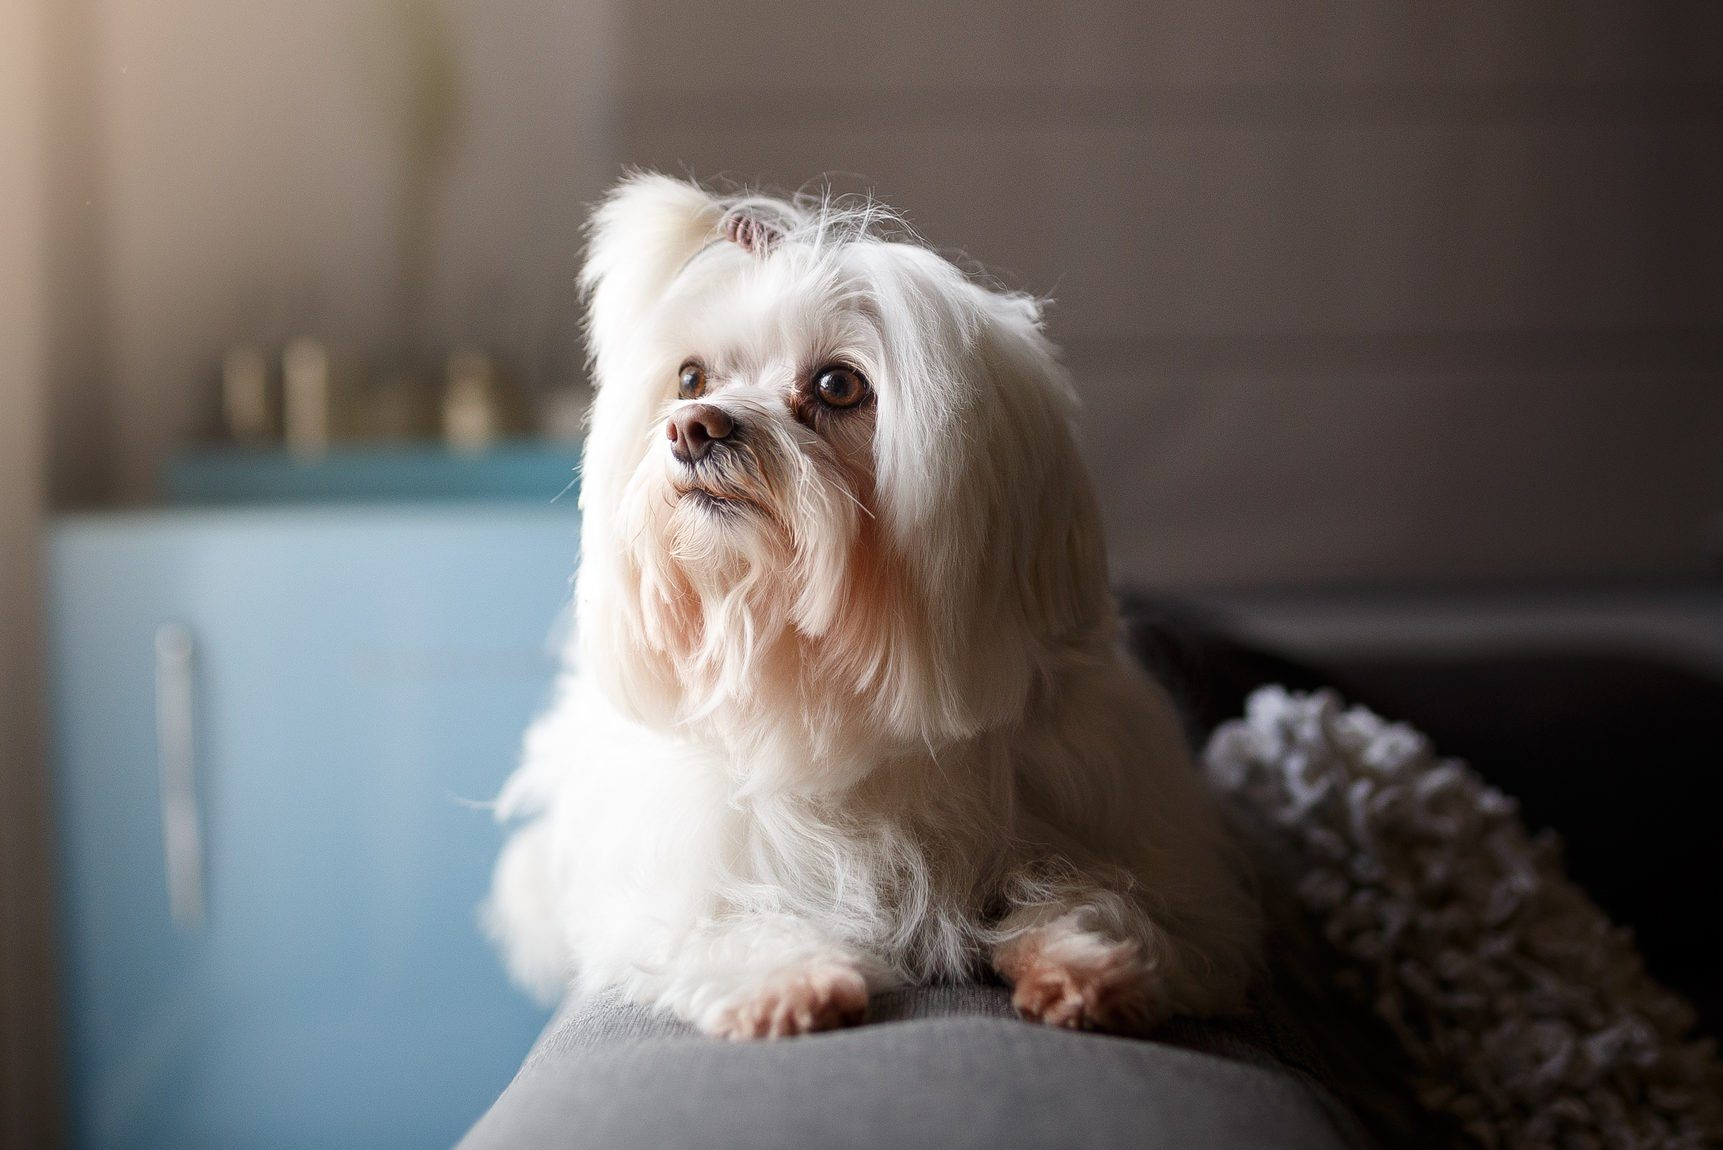 White Lhasa Apso dog portrait